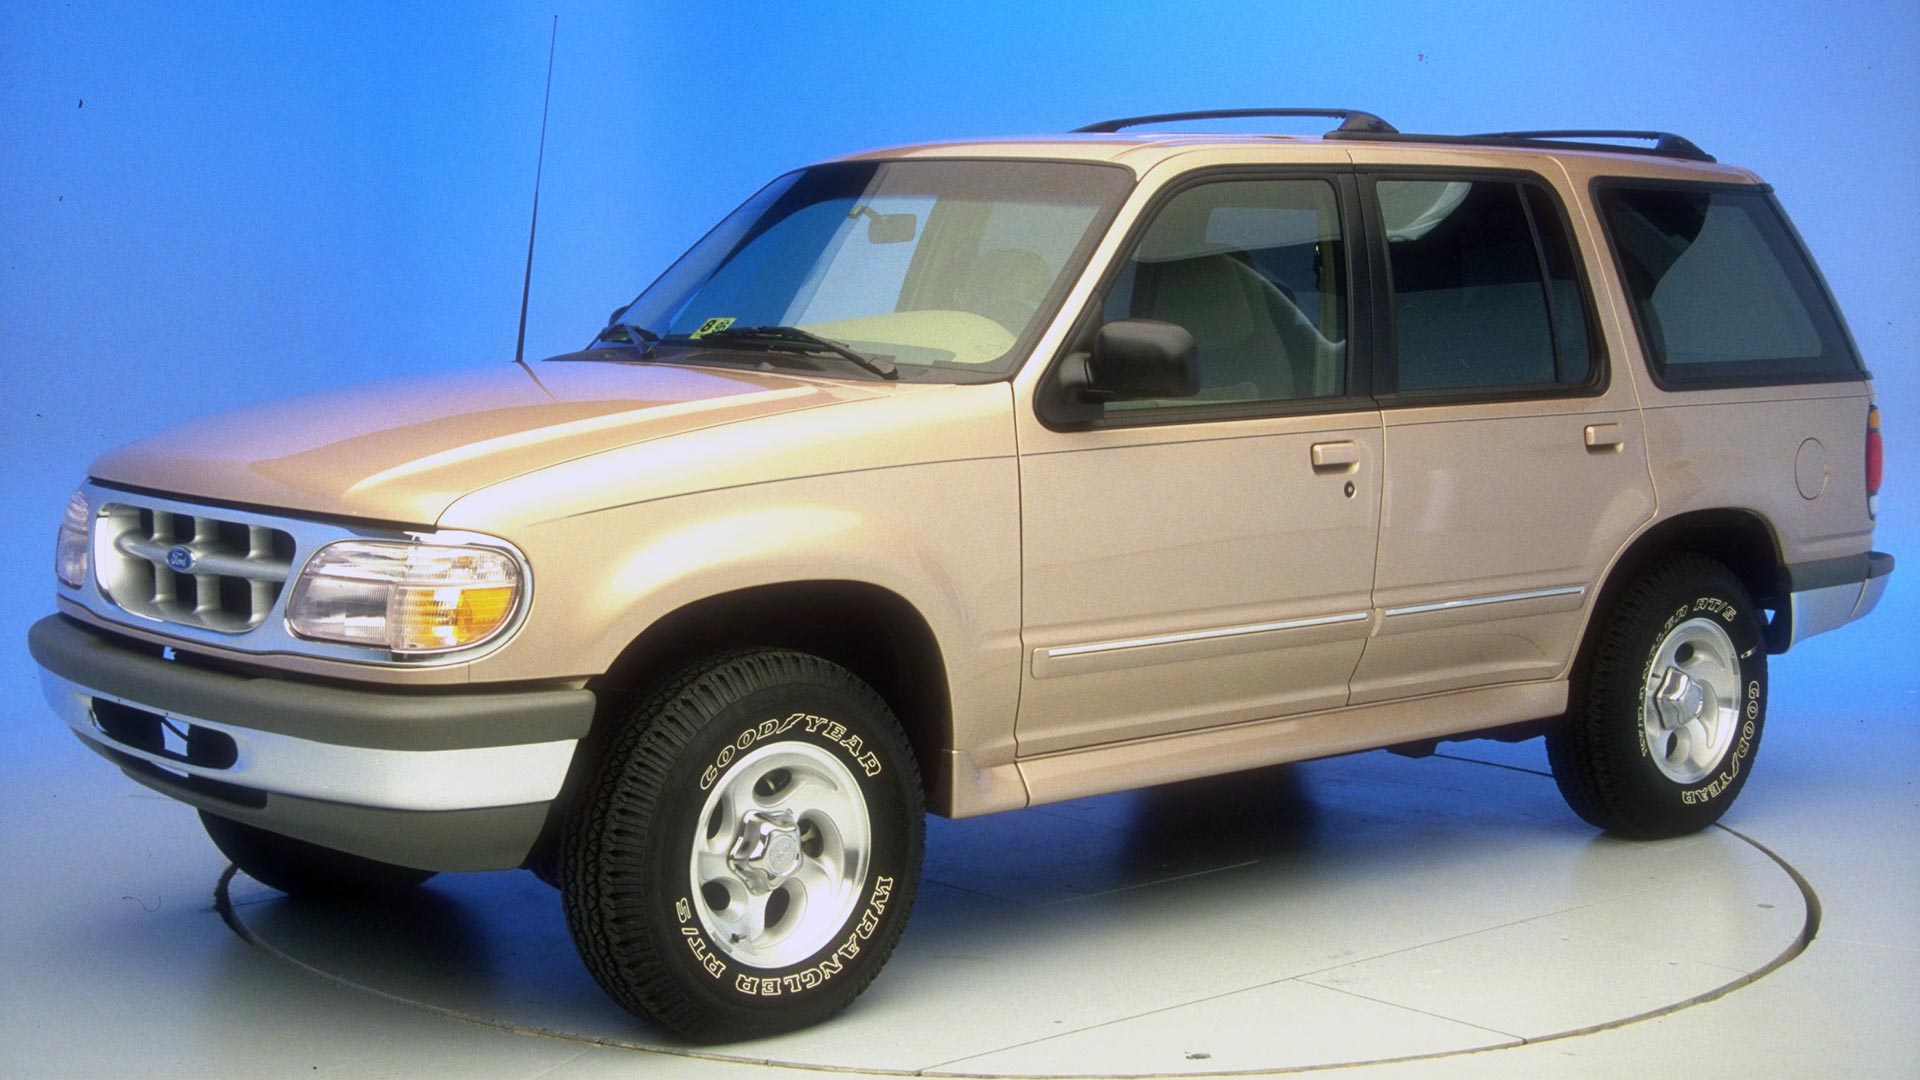 1998 Ford Explorer 4-door SUV